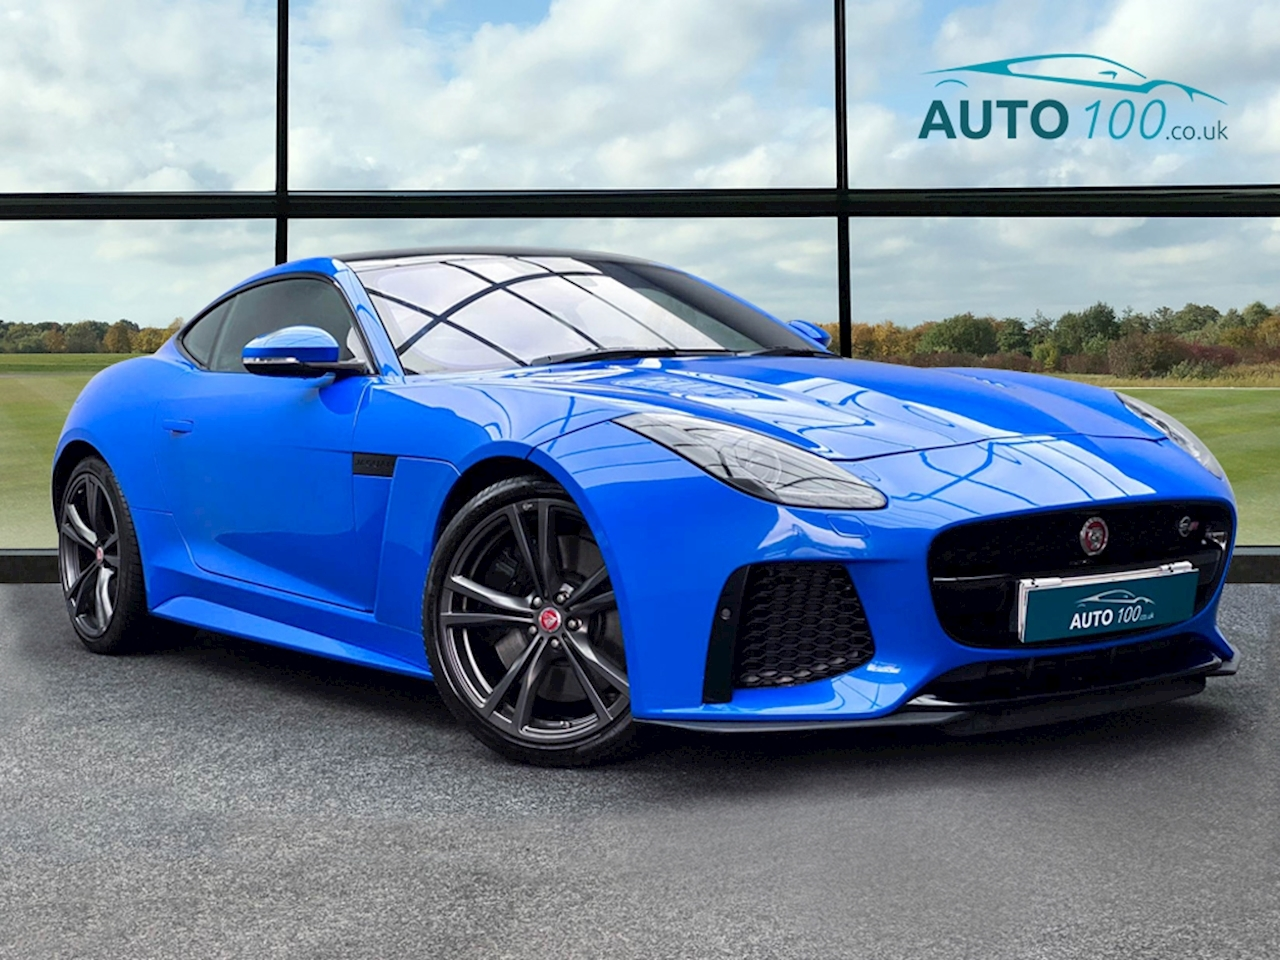 Jaguar F-Type SVR Coupe 5.0 Automatic Petrol